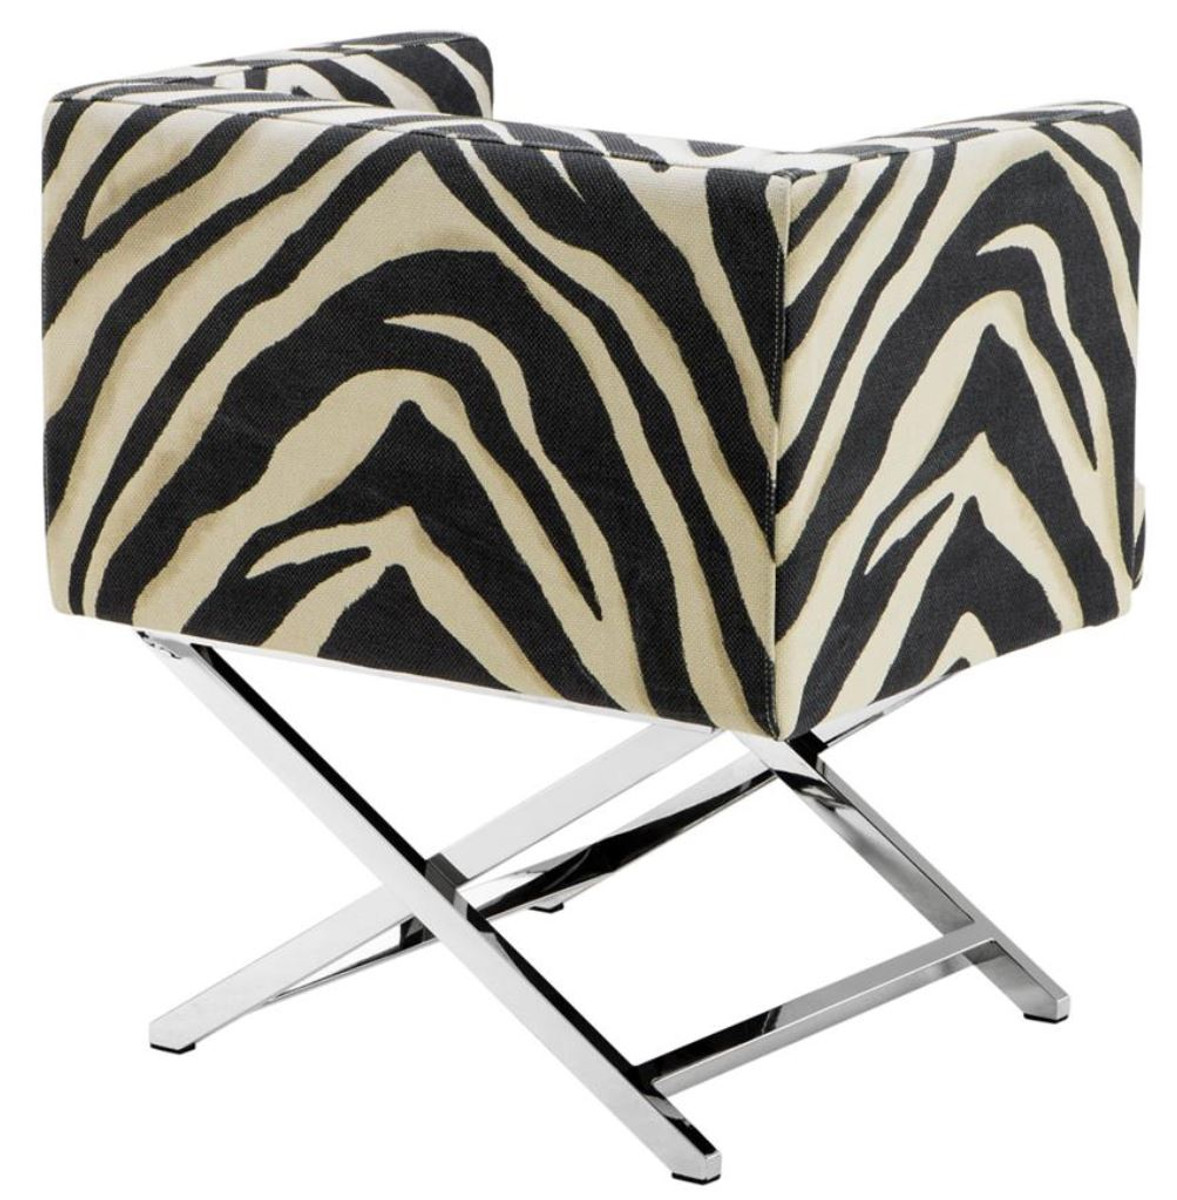 Zebra Sessel Casa Padrino Luxus Club Sessel Im Zebra Design 68 X 57 X H 74 Cm Art Deco Möbel